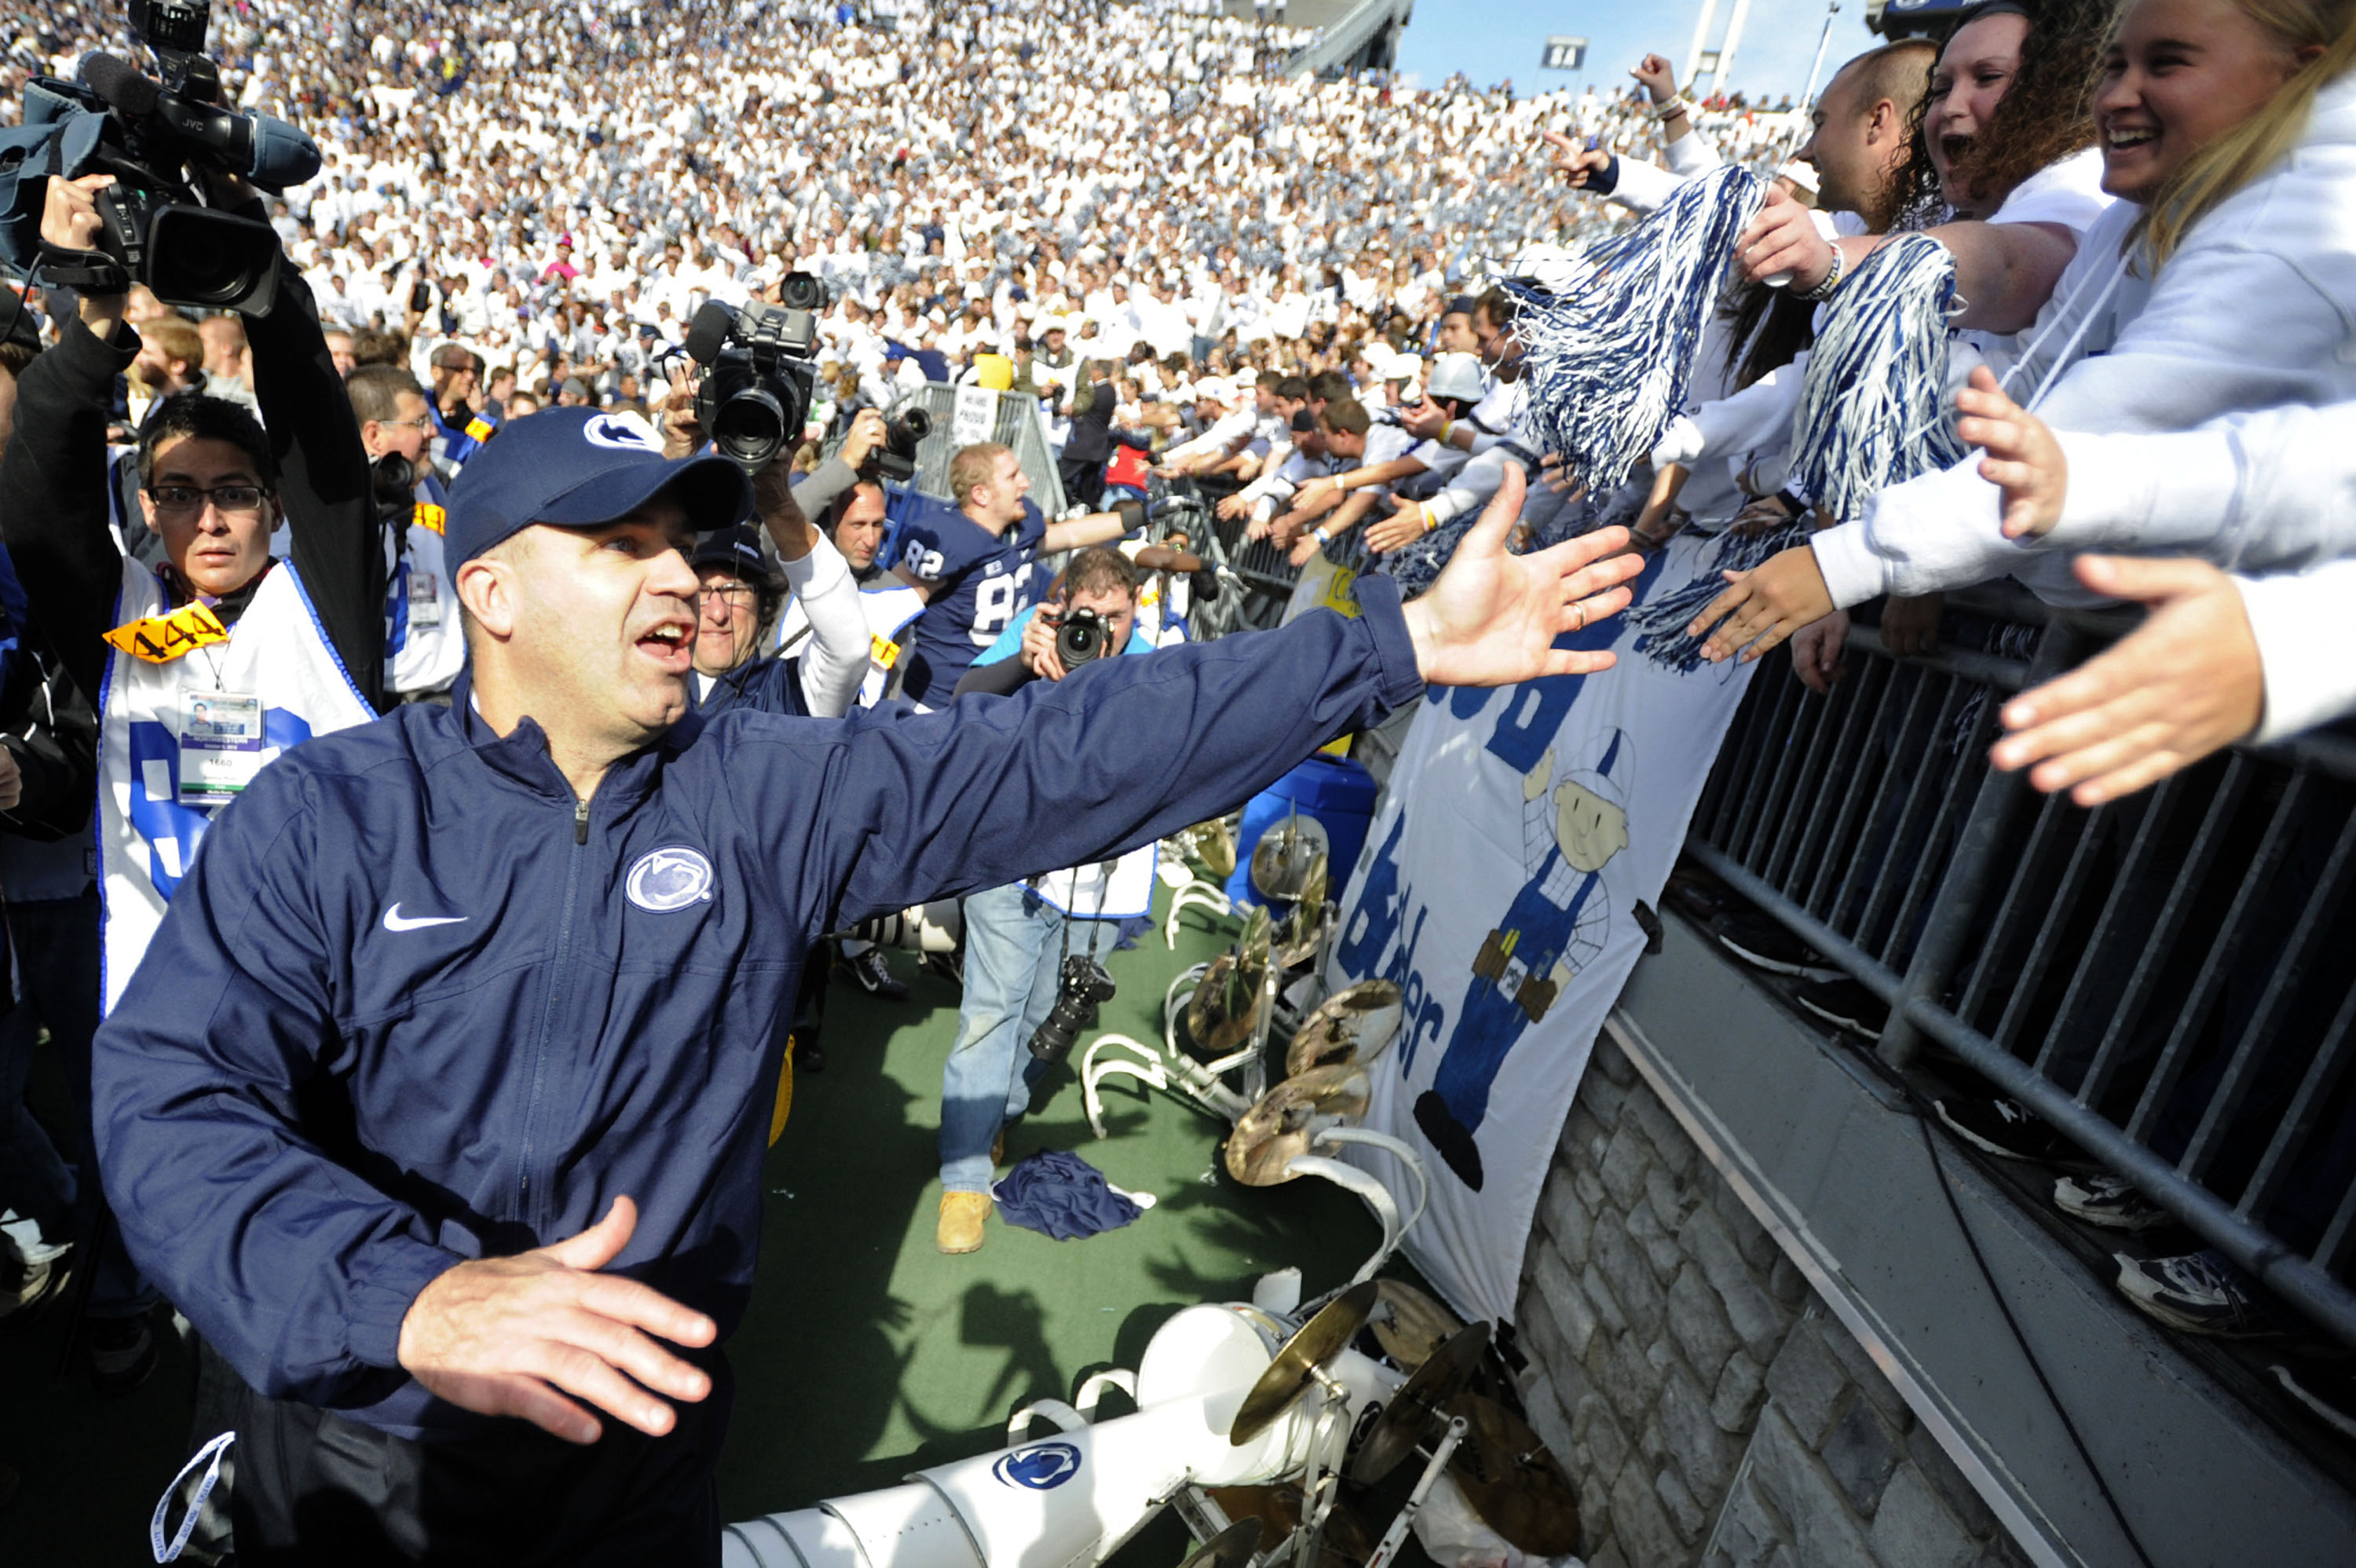 Penn State head coach Bill O´Brien celebrates with the student section after a 39-28 win against Northwestern on Saturday, October 6, 2012, at Beaver Stadium in University Park, Pennsylvania. (Christopher Weddle/Centre Daily Times/MCT)